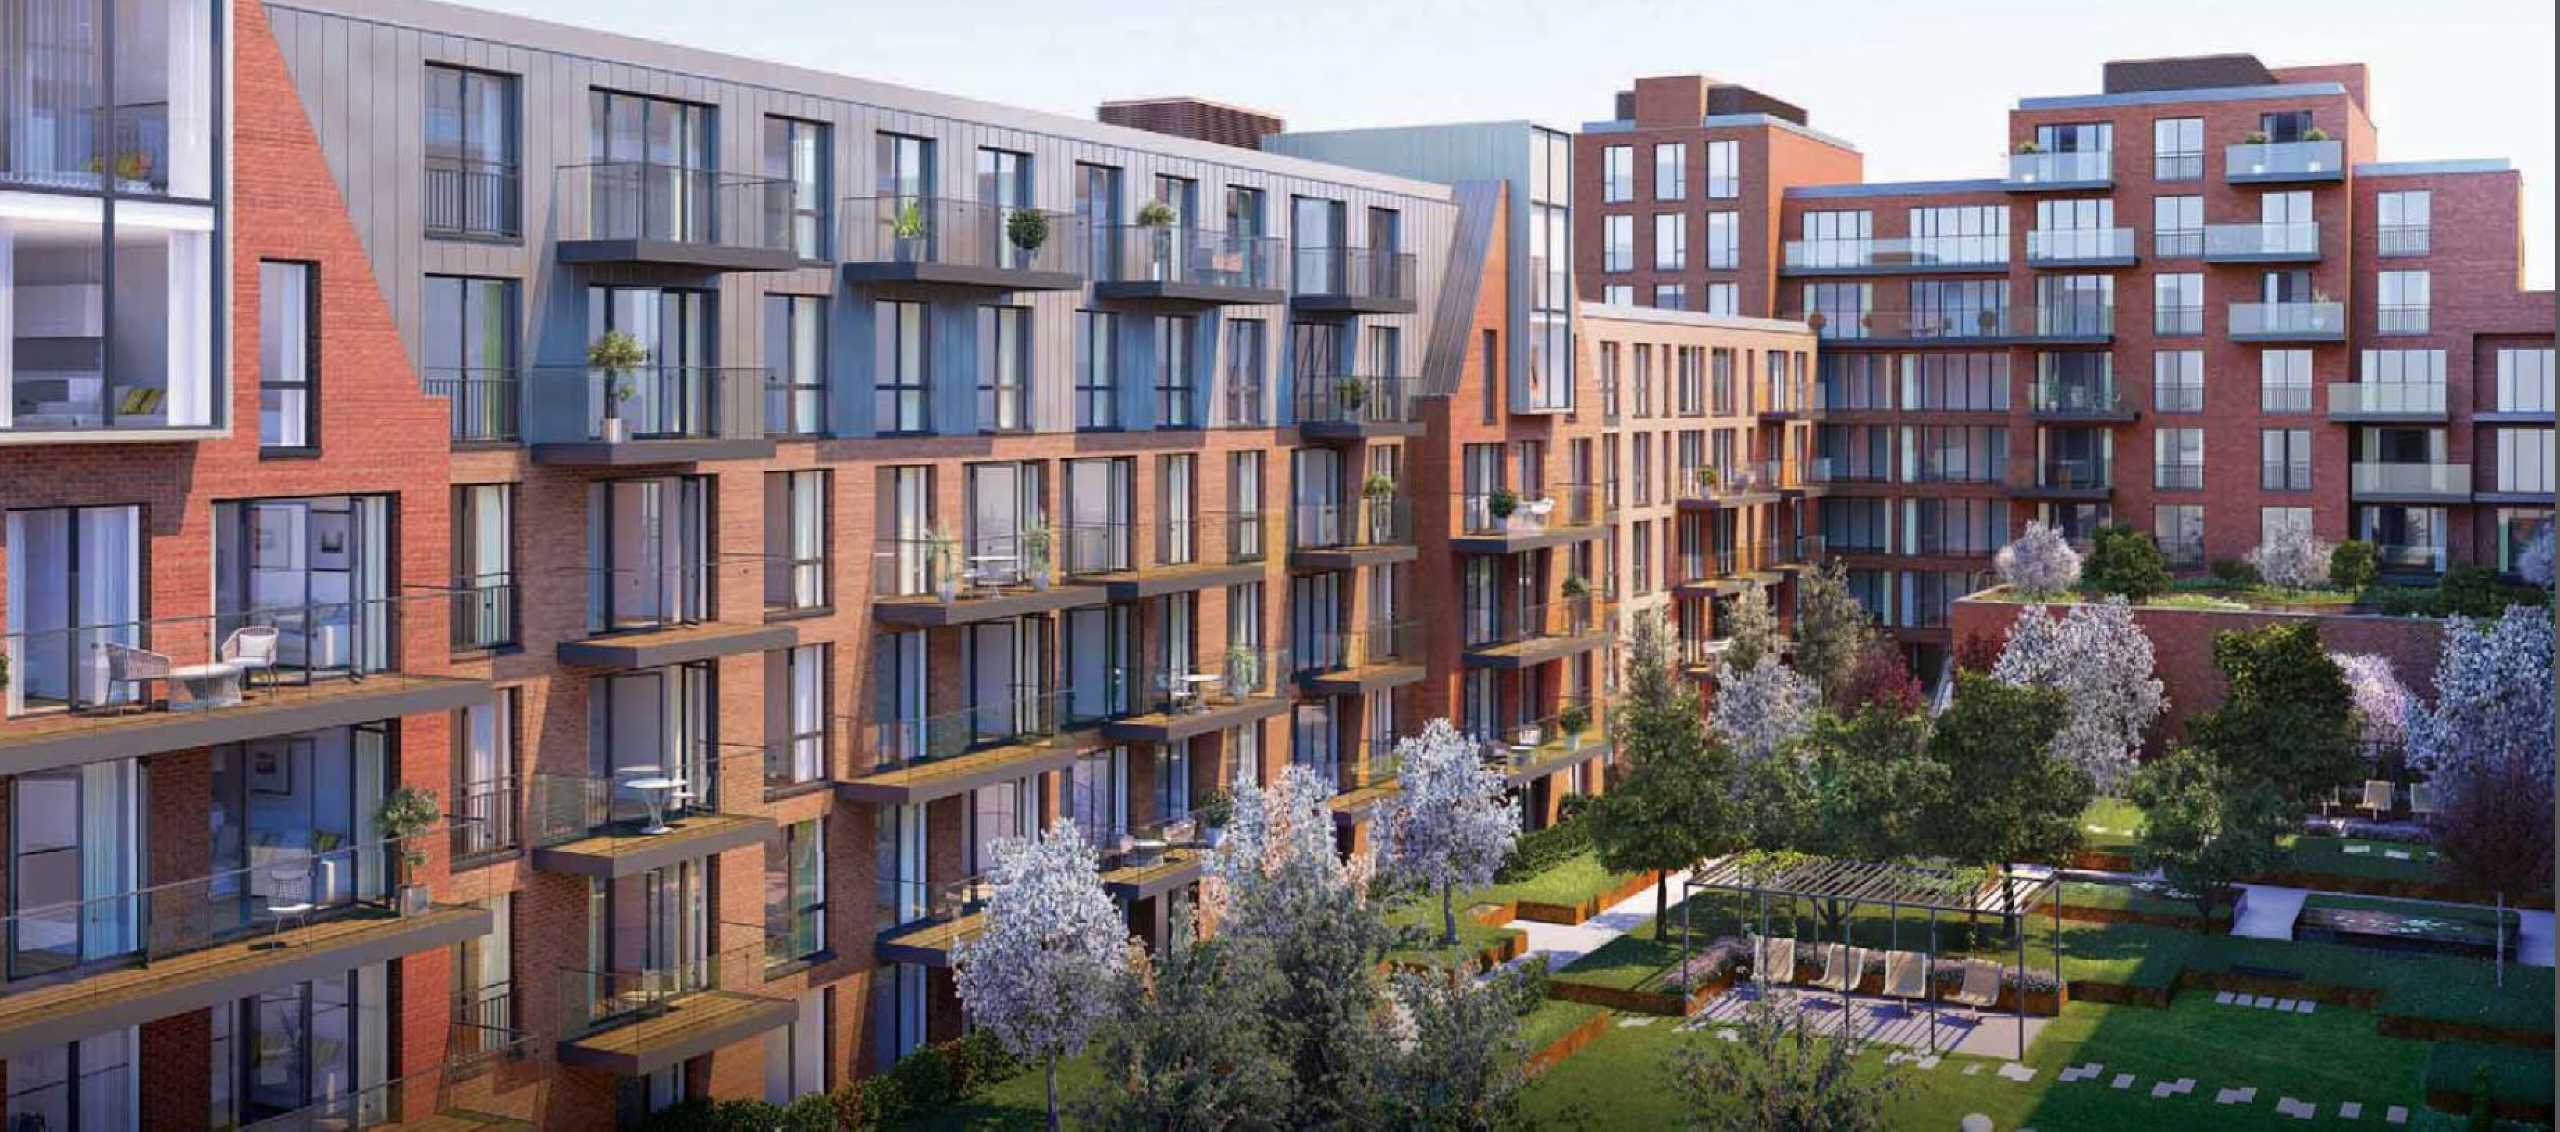 2 Bedrooms Apartment Flat for sale in Streatham Hill, Core F, 142-170 Streatham Hill, London, SW2